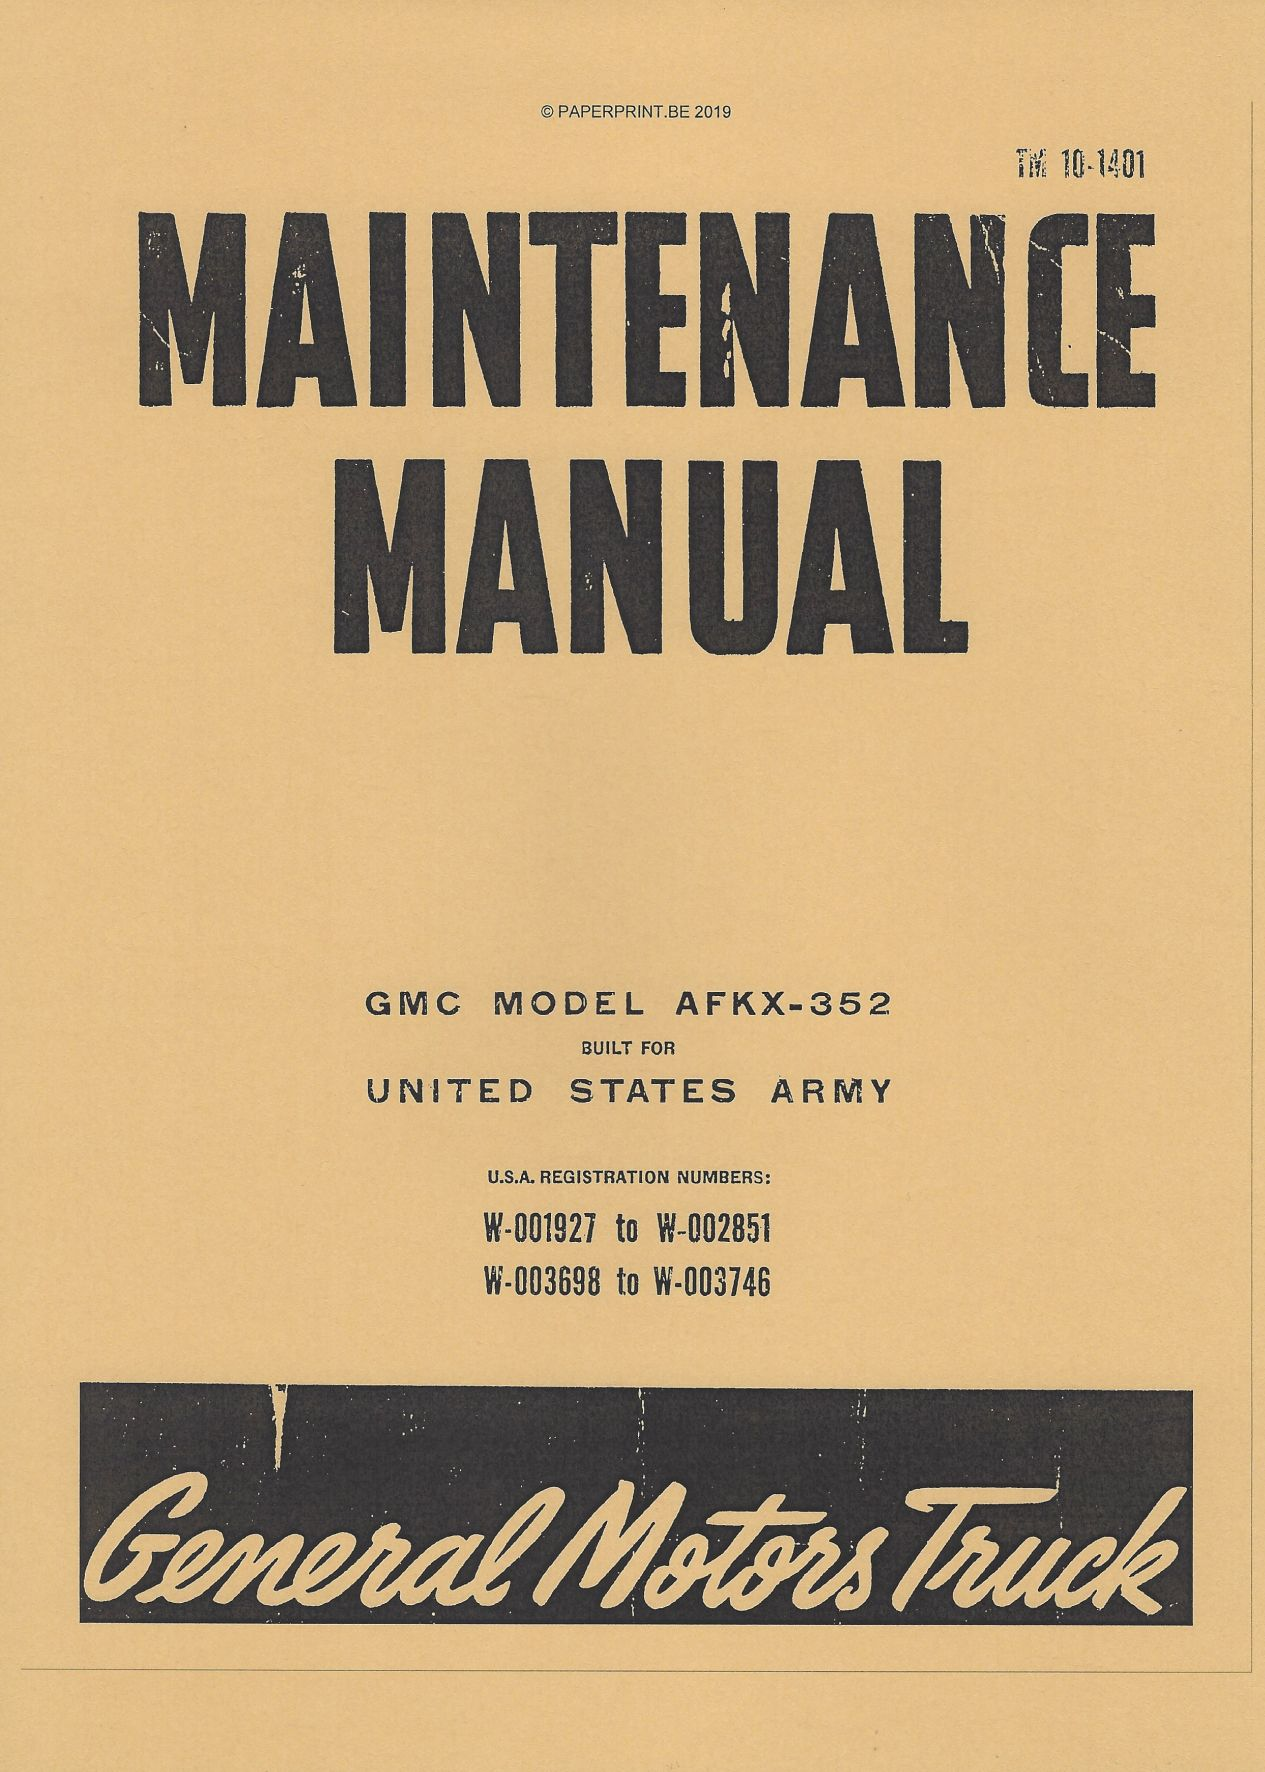 TM 10-1401 US GMC AFKX-352  MAINTENANCE MANUAL